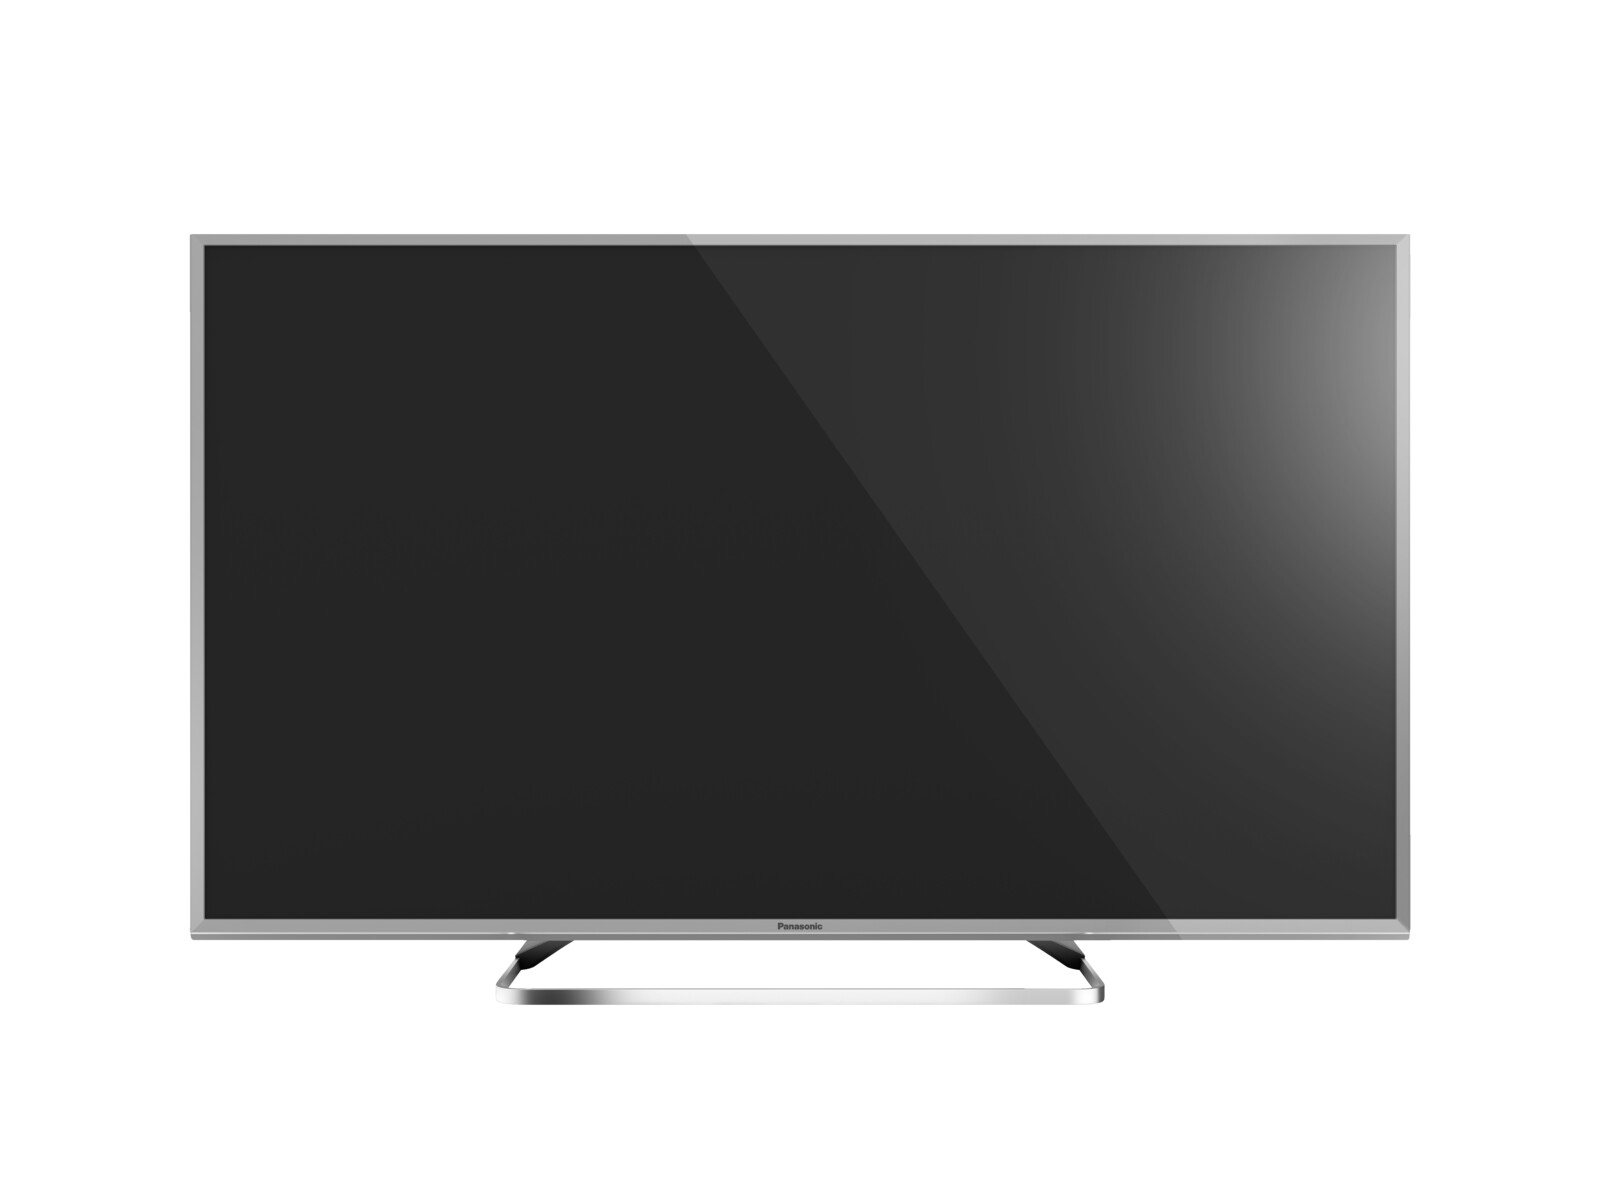 panasonic tx 32esw504 80 cm 32 zoll hd ready smart tv led tv 600 hz bmr ebay. Black Bedroom Furniture Sets. Home Design Ideas